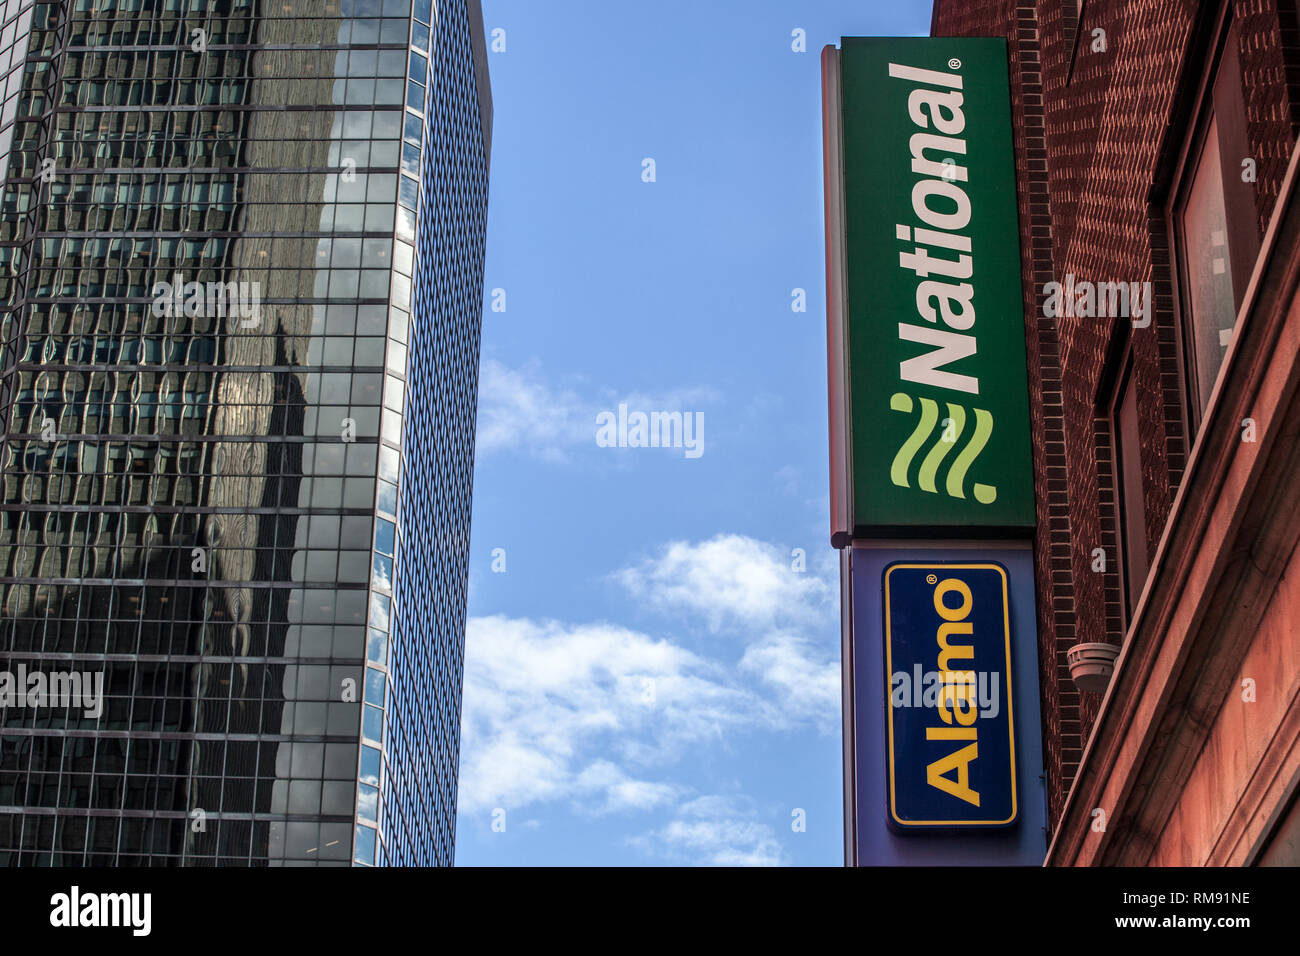 MONTREAL, CANADA - NOVEMBER 7, 2018: Logo of National Car Rental and Alamo on their main office for Montreal, Quebec. National and Alamo are car renta - Stock Image